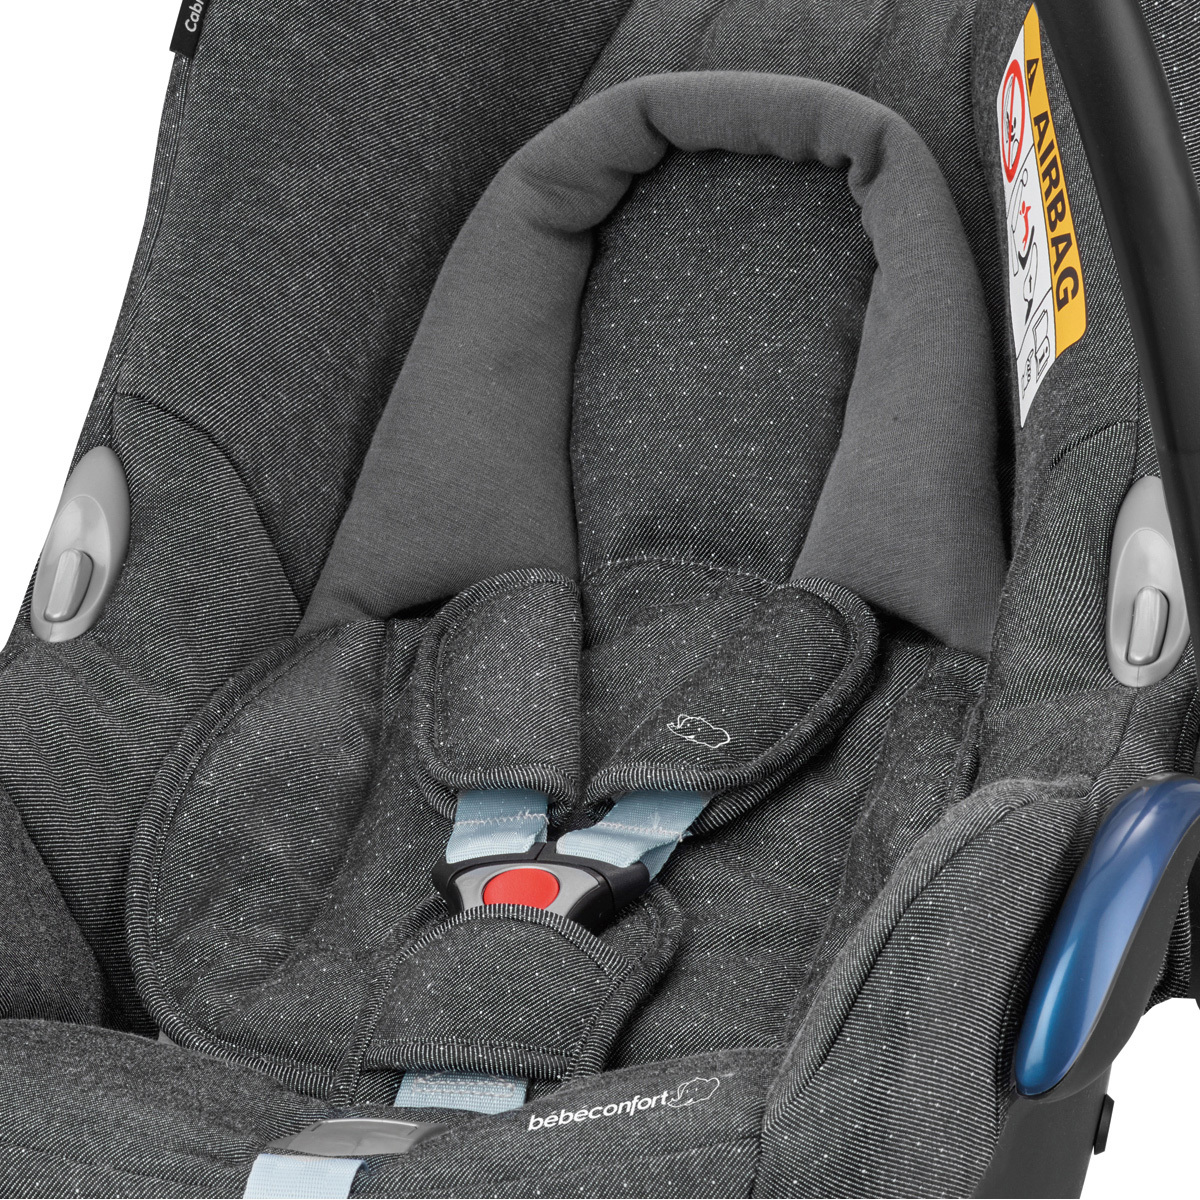 b b confort si ge auto cabriofix isofix groupe 0 sparkling grey si ge auto et coque b b. Black Bedroom Furniture Sets. Home Design Ideas